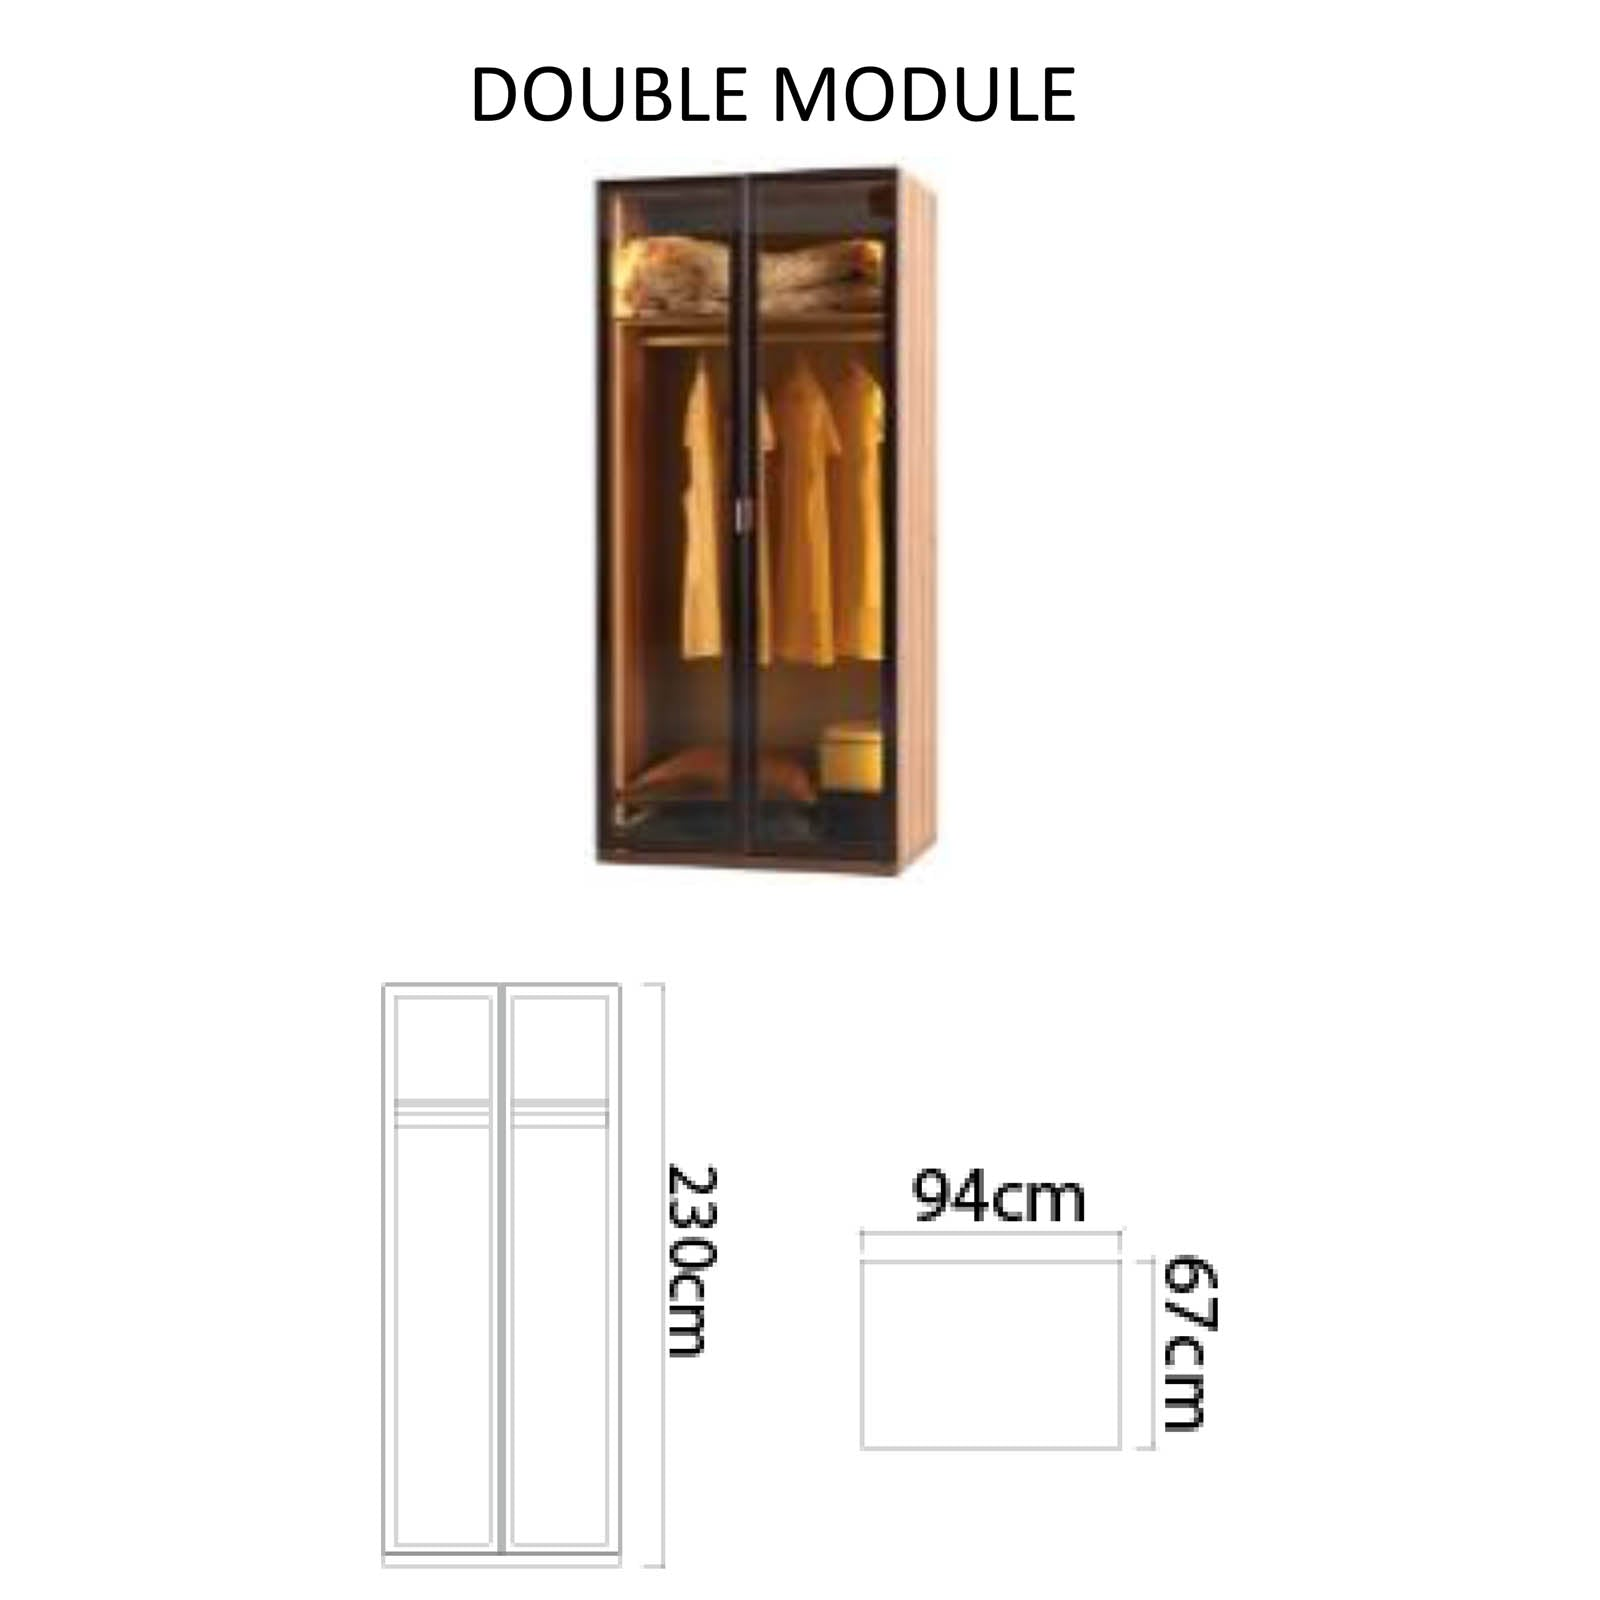 Lego double module cabinet with LED  LEGODouble